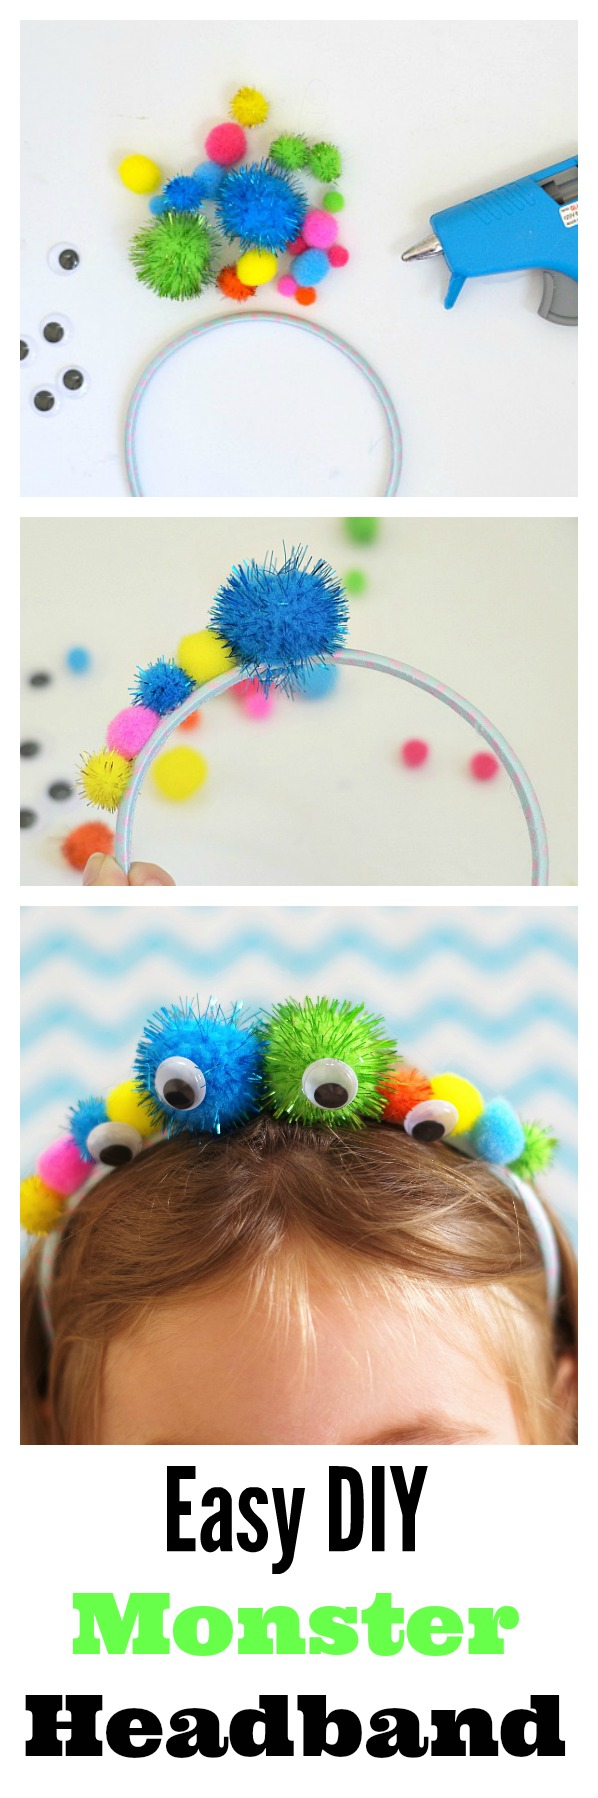 easy-diy-monster-headband-make-this-simple-headband-for-halloween-or-for-fun